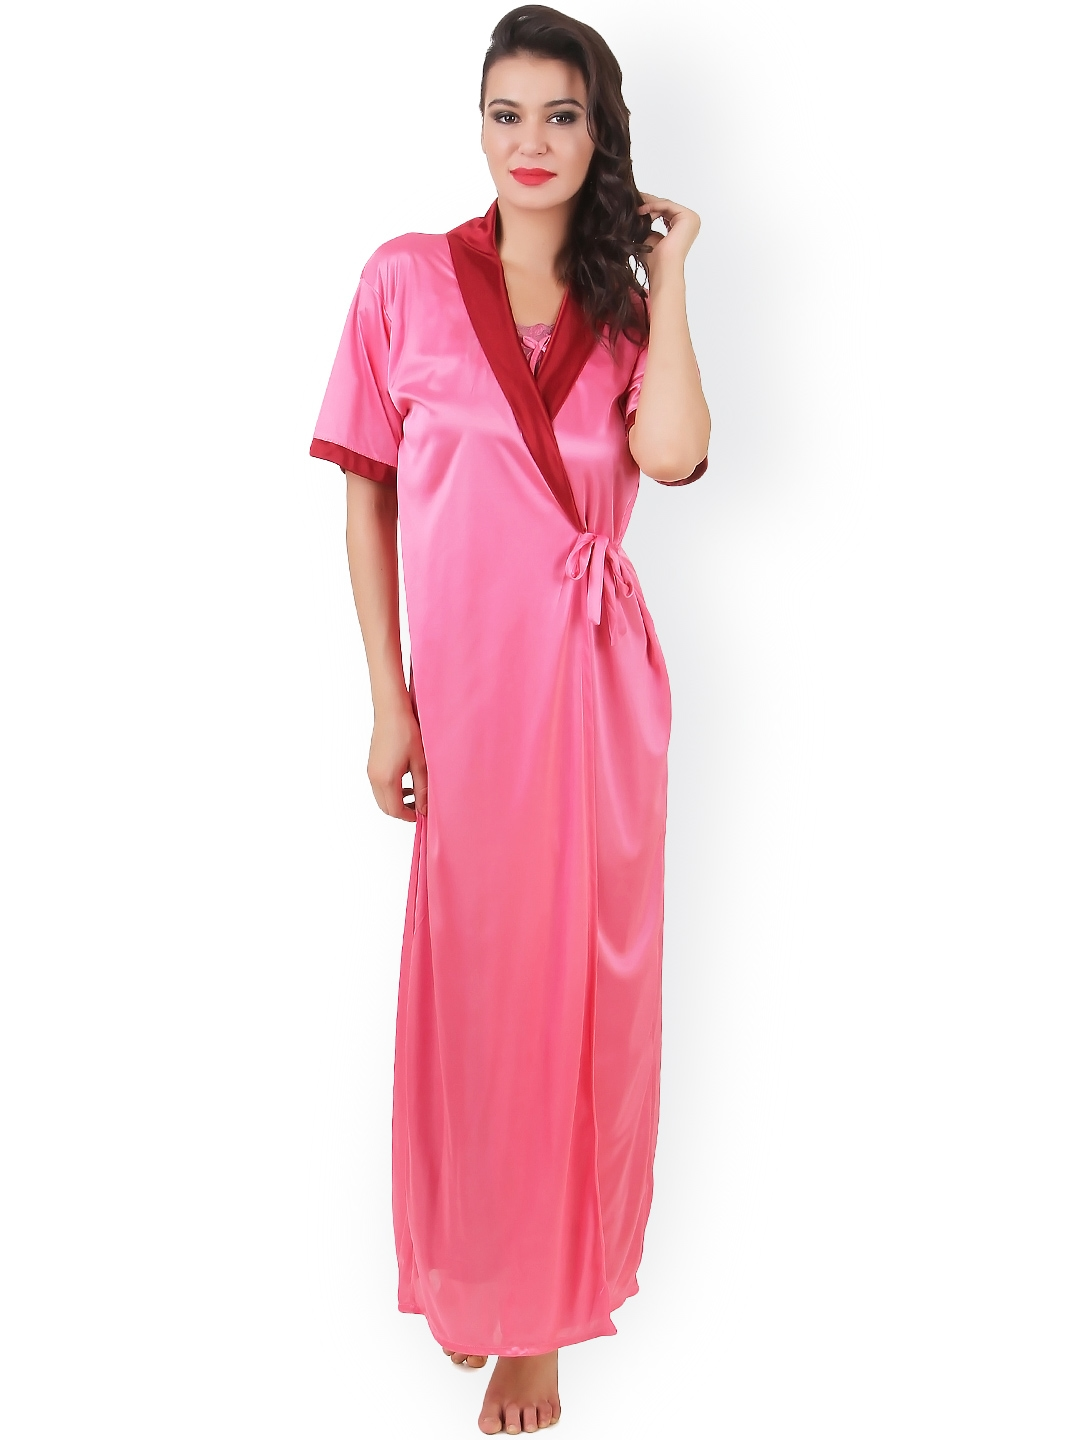 4bdb646672e Buy Masha Red   Pink Maxi Nightdress With Robe NT2PC A11 381 - Nightdress  for Women 1078960